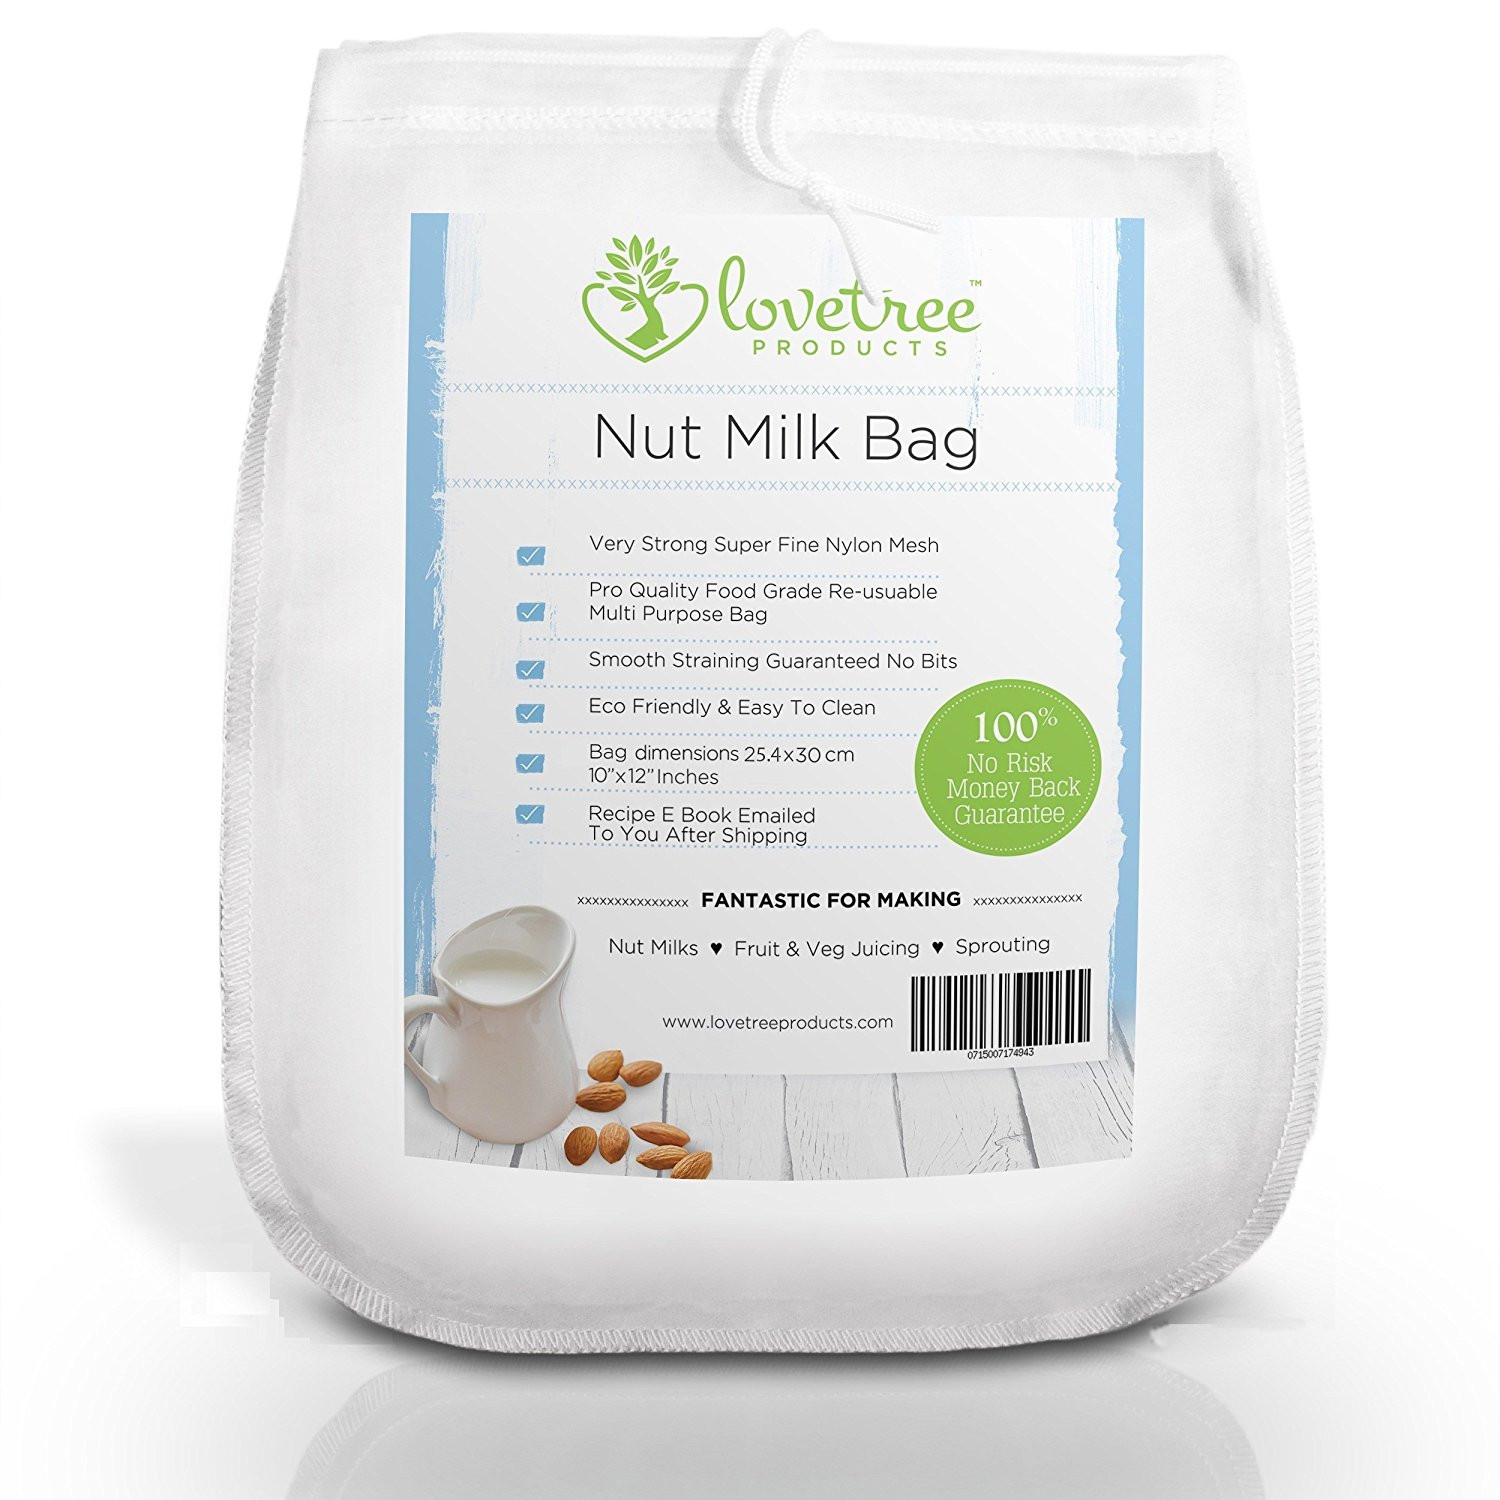 Lovetree Products Nut Milk Bag Professional Filter for Almond Coconut Greek Yogurt Soy Milk Fruit & Veg Cheesecloth Replacement Reusable Strainer